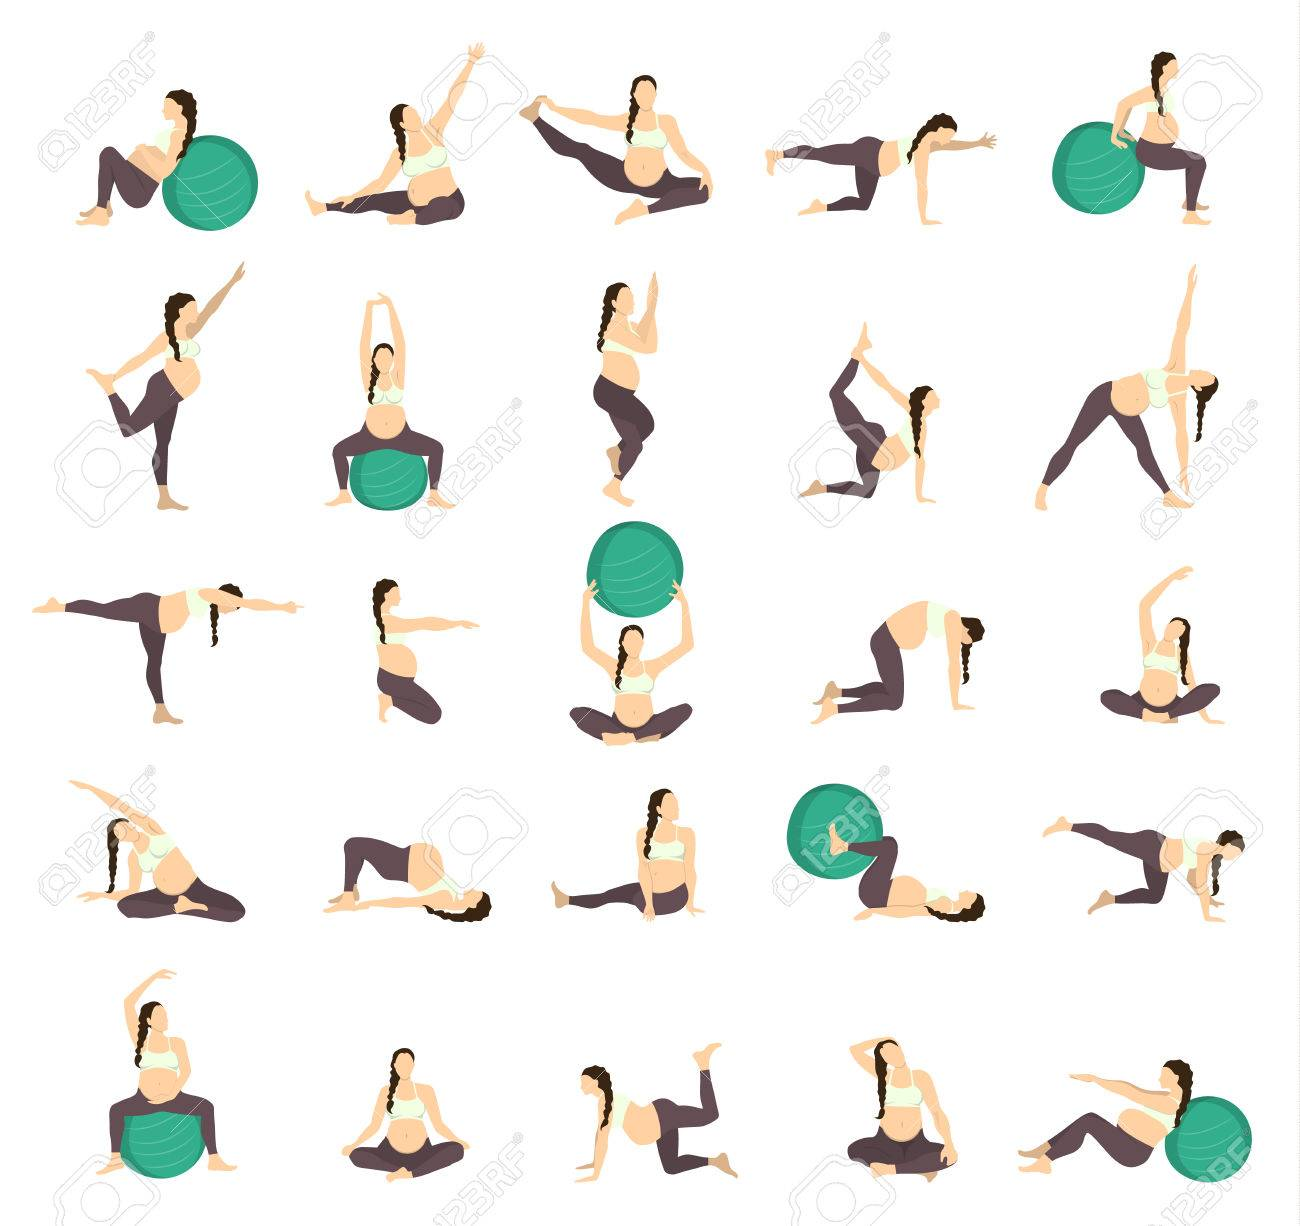 Workout For Pregnant Set Exercises With Fit Ball Yoga Training Royalty Free Cliparts Vectors And Stock Illustration Image 68841751